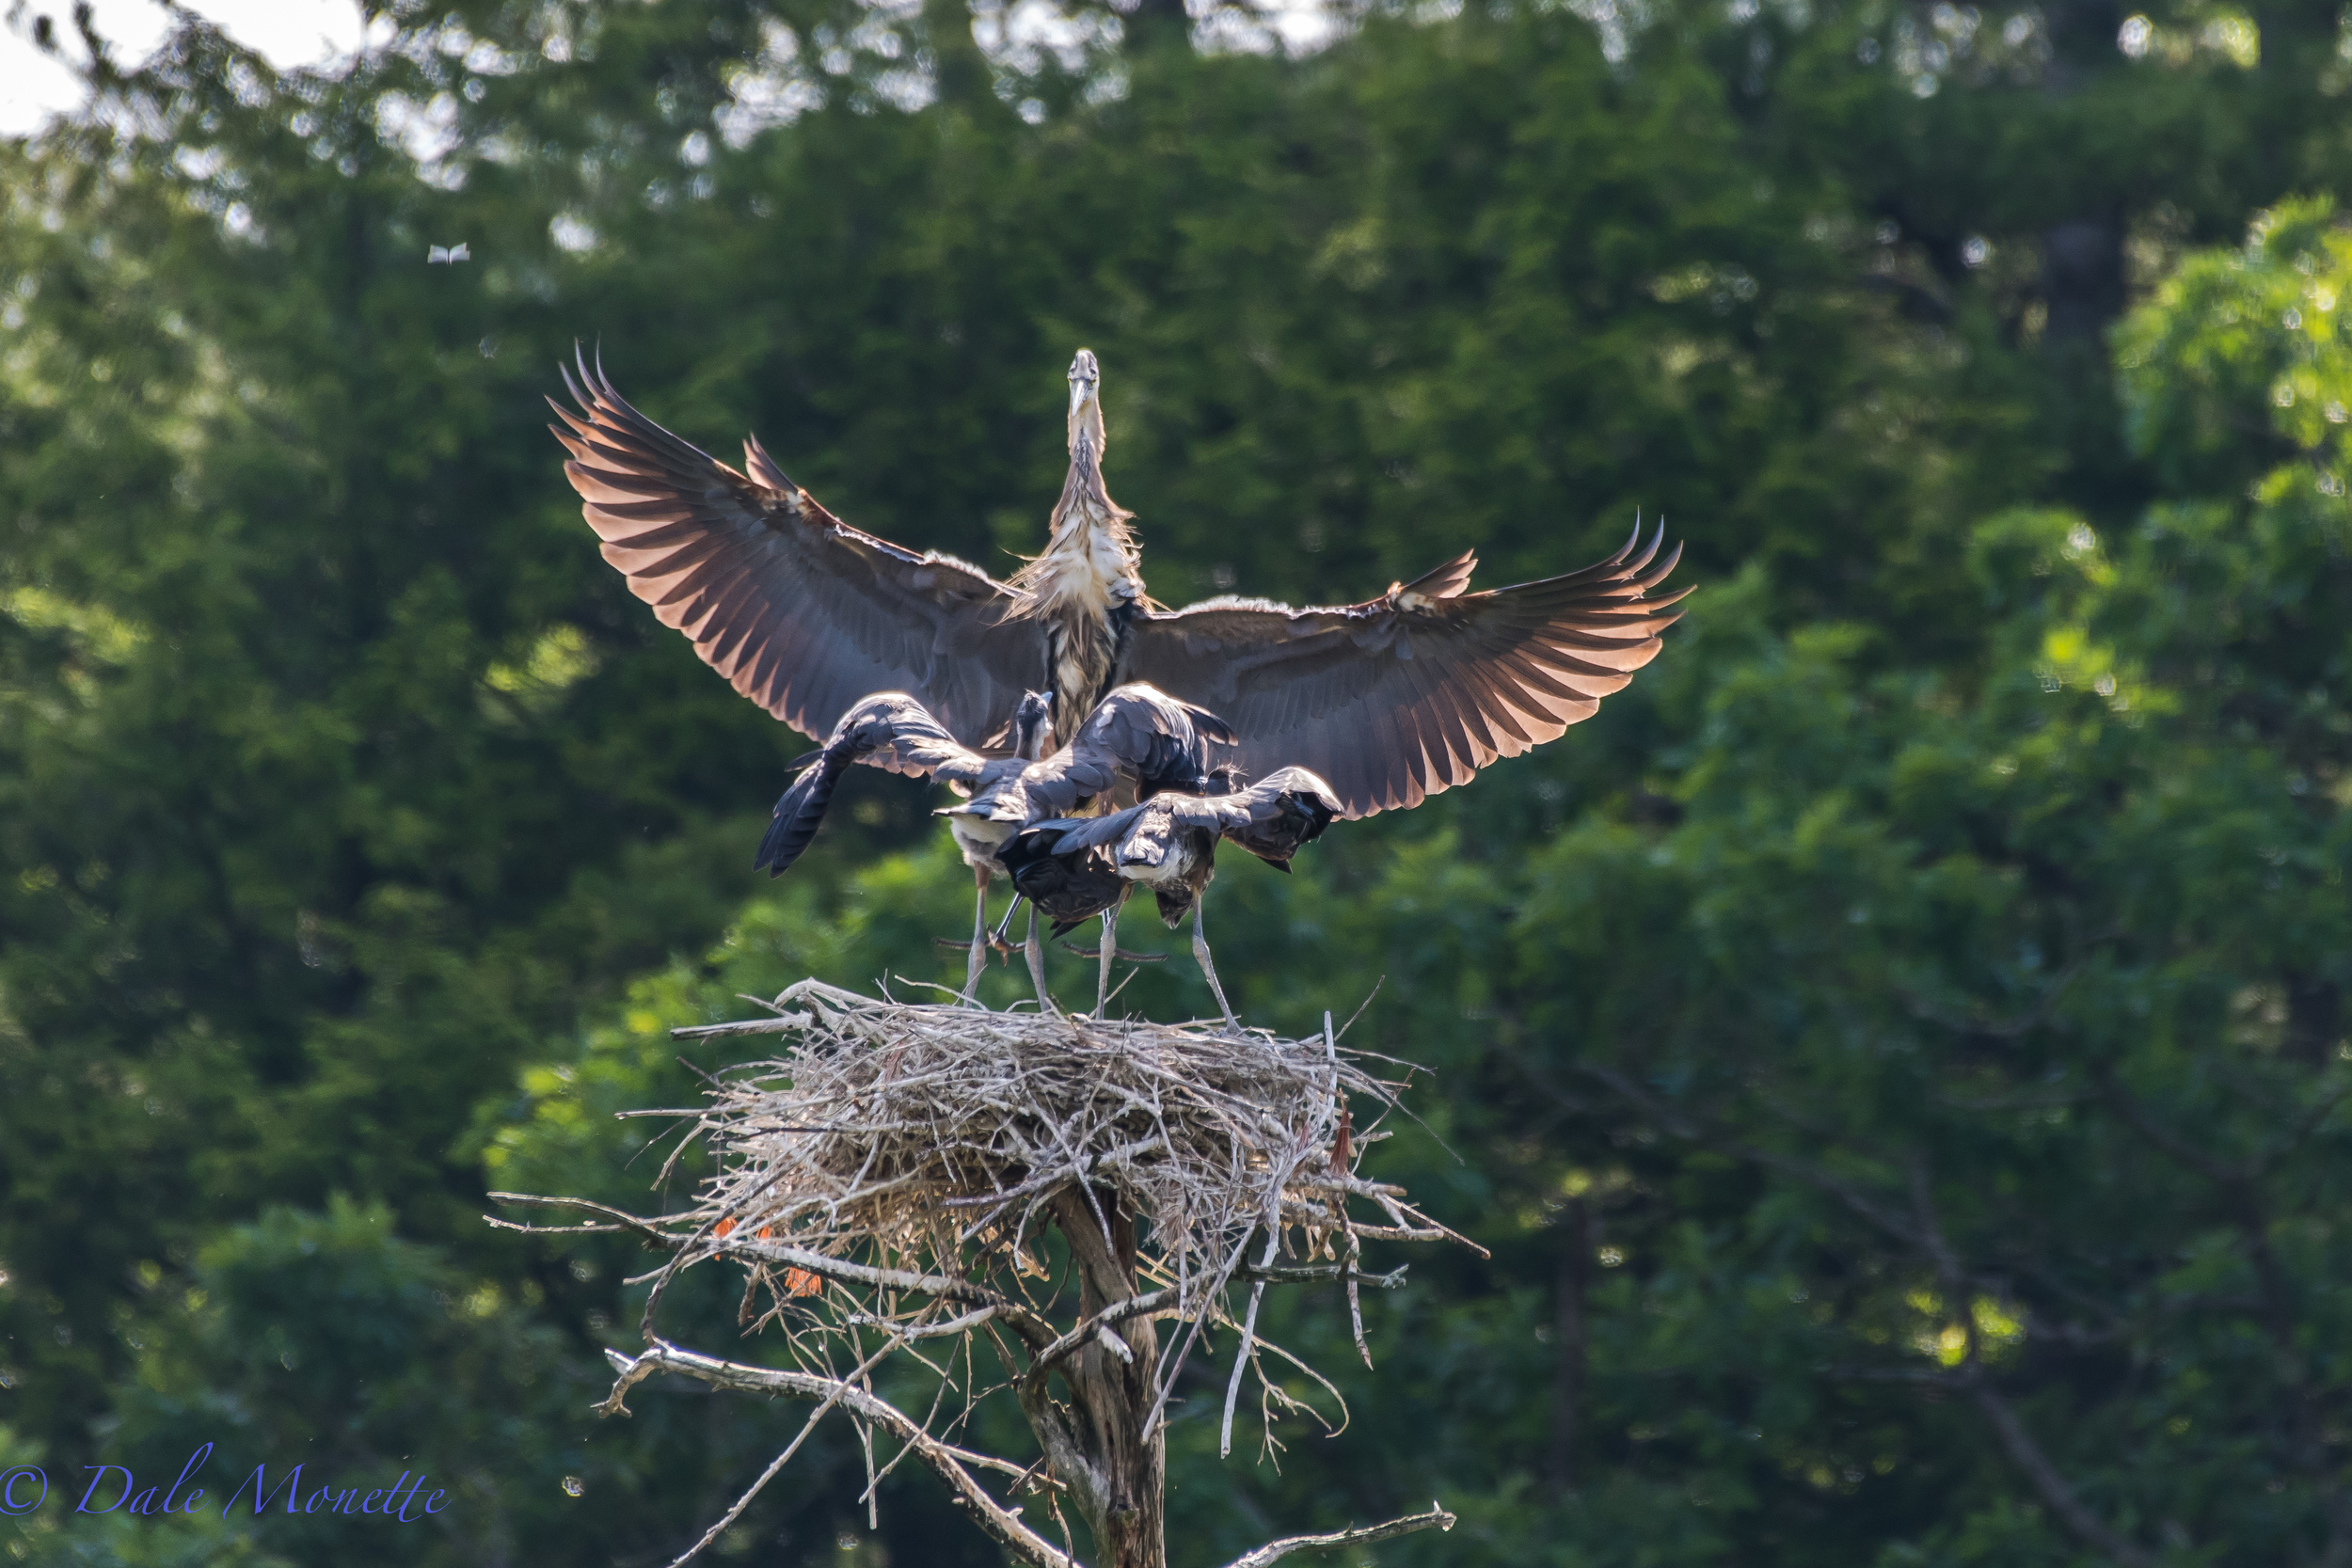 """""""Dads here with lunch !""""  Two of three great blue heron chicks are greeting dinner from one of their parents landing. The third chick has already left the nest. I suspect these 2 will be gone from the nest within a week. 6/29/16"""